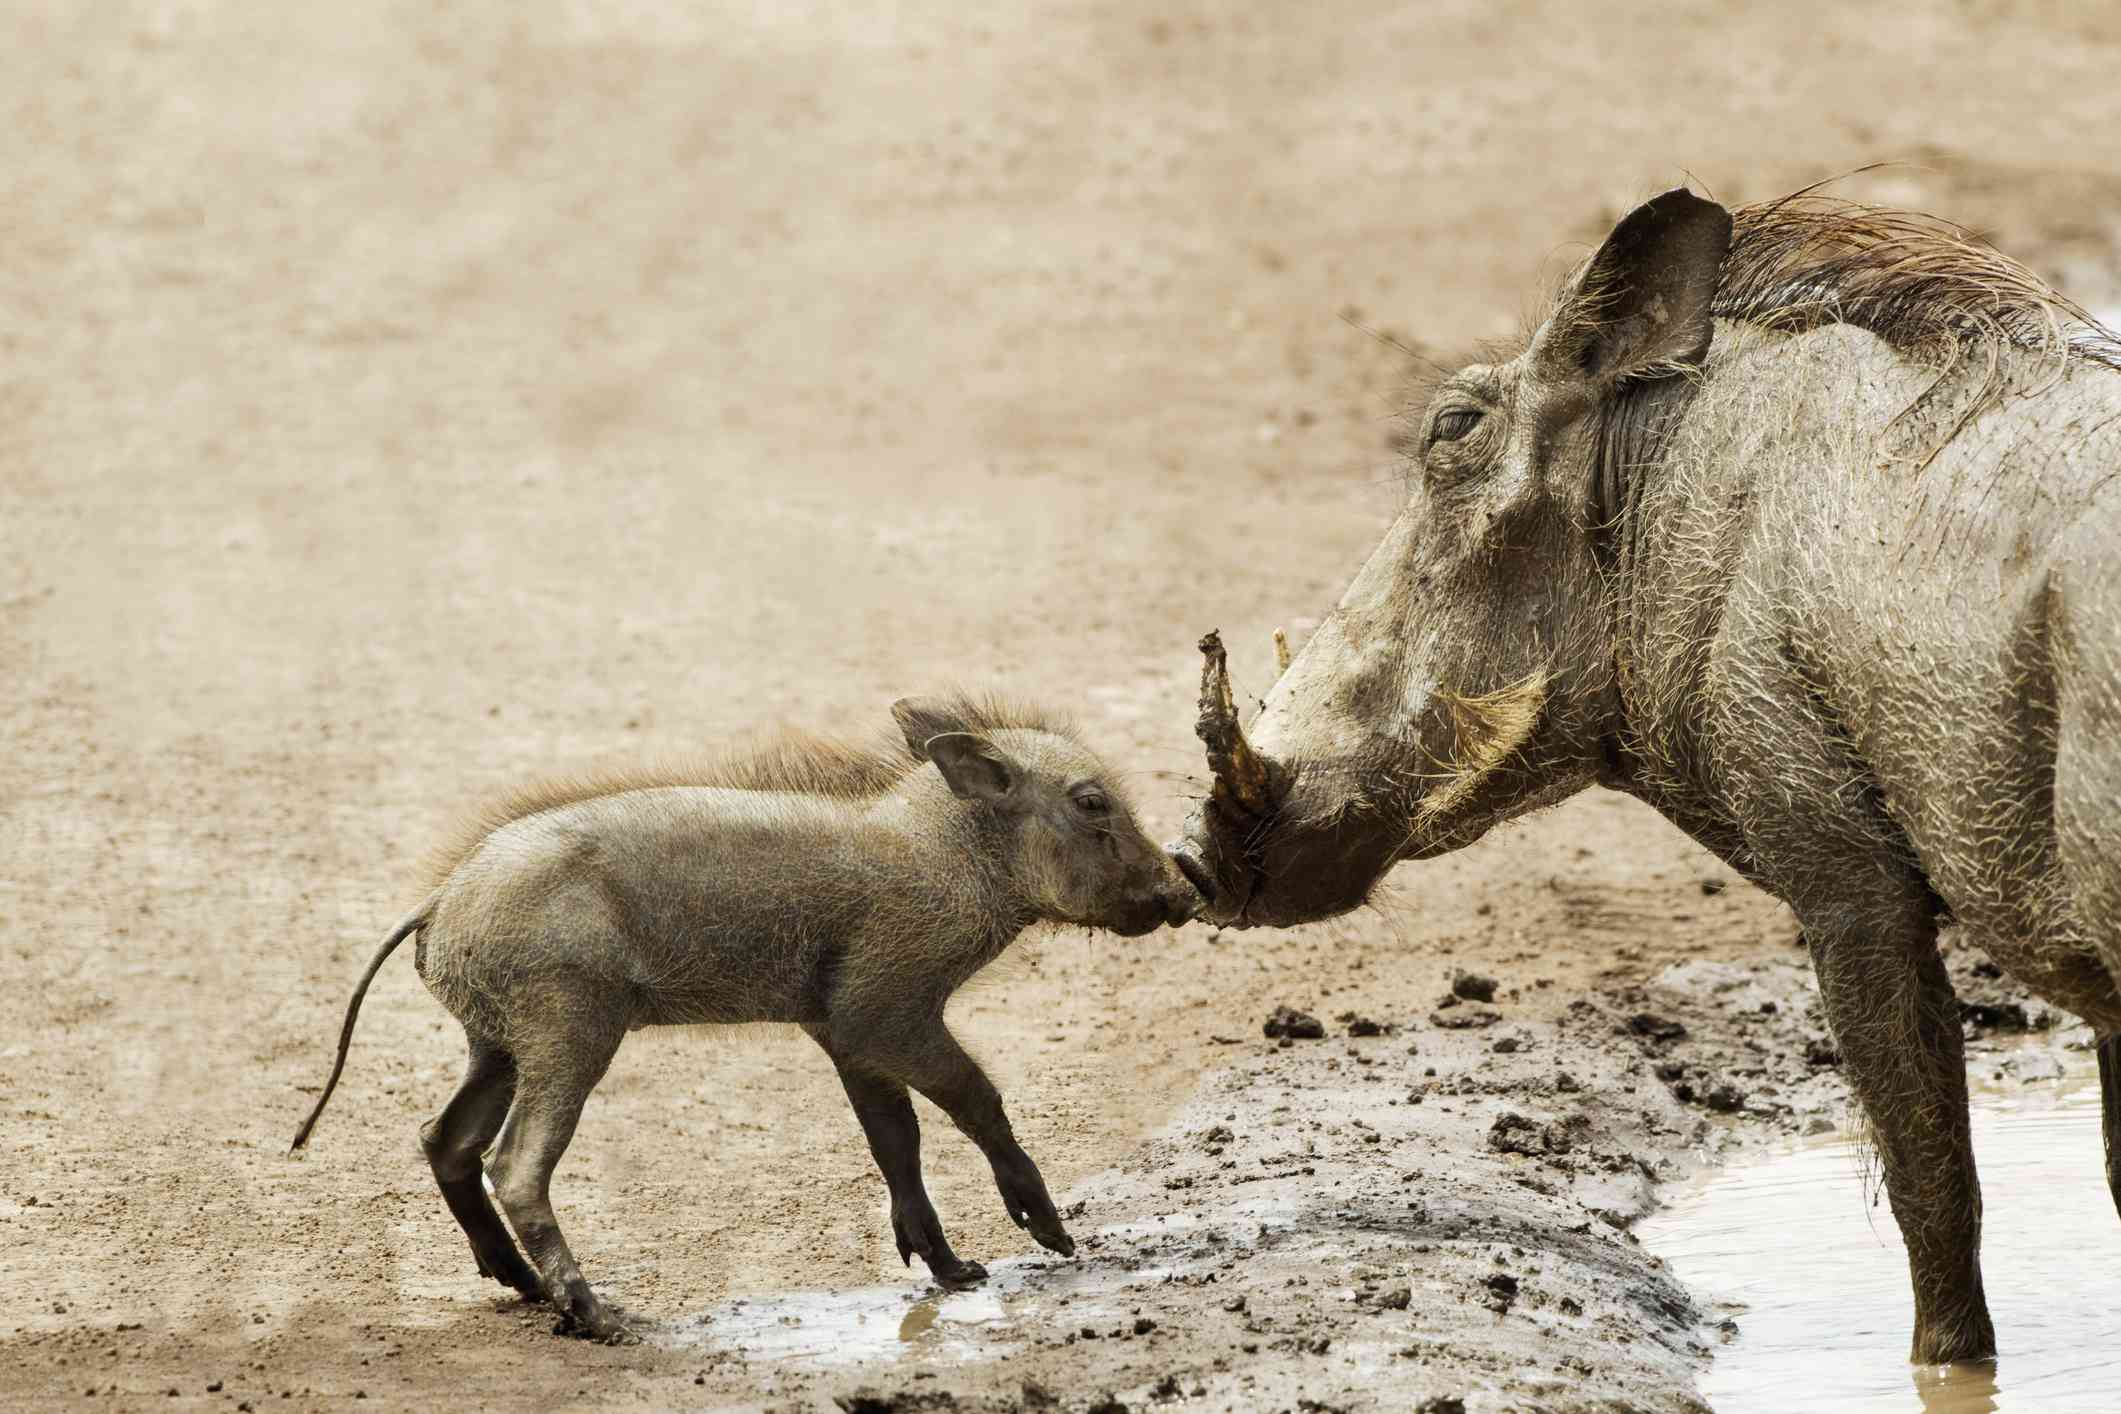 Baby warthog with its mother